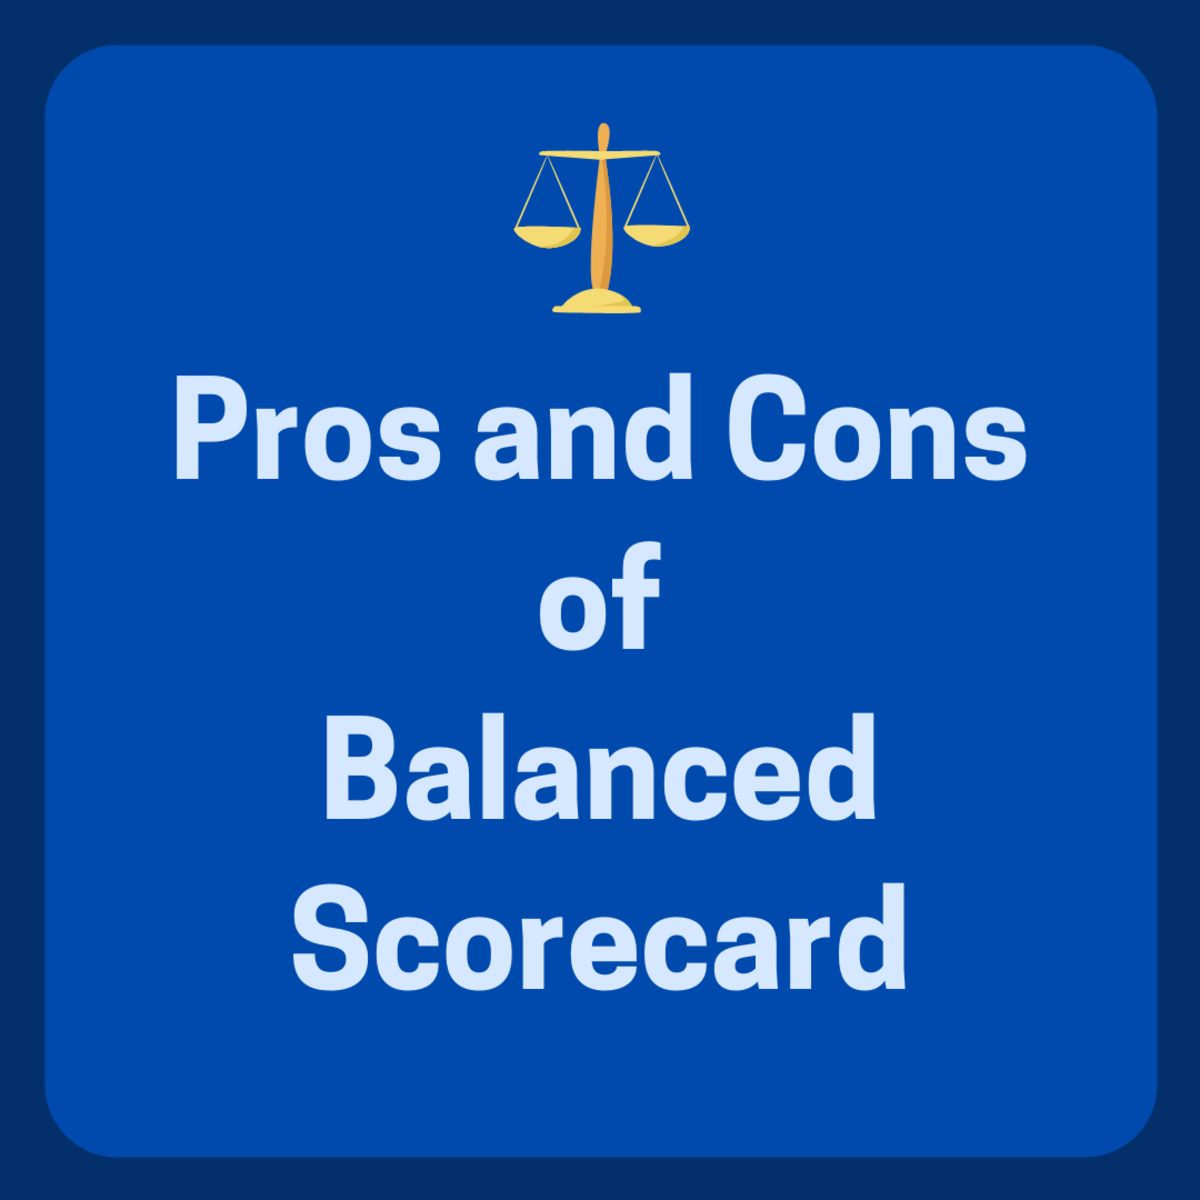 Discover some of the benefits and drawbacks of using Balanced Scorecard (BSC) in your organization.